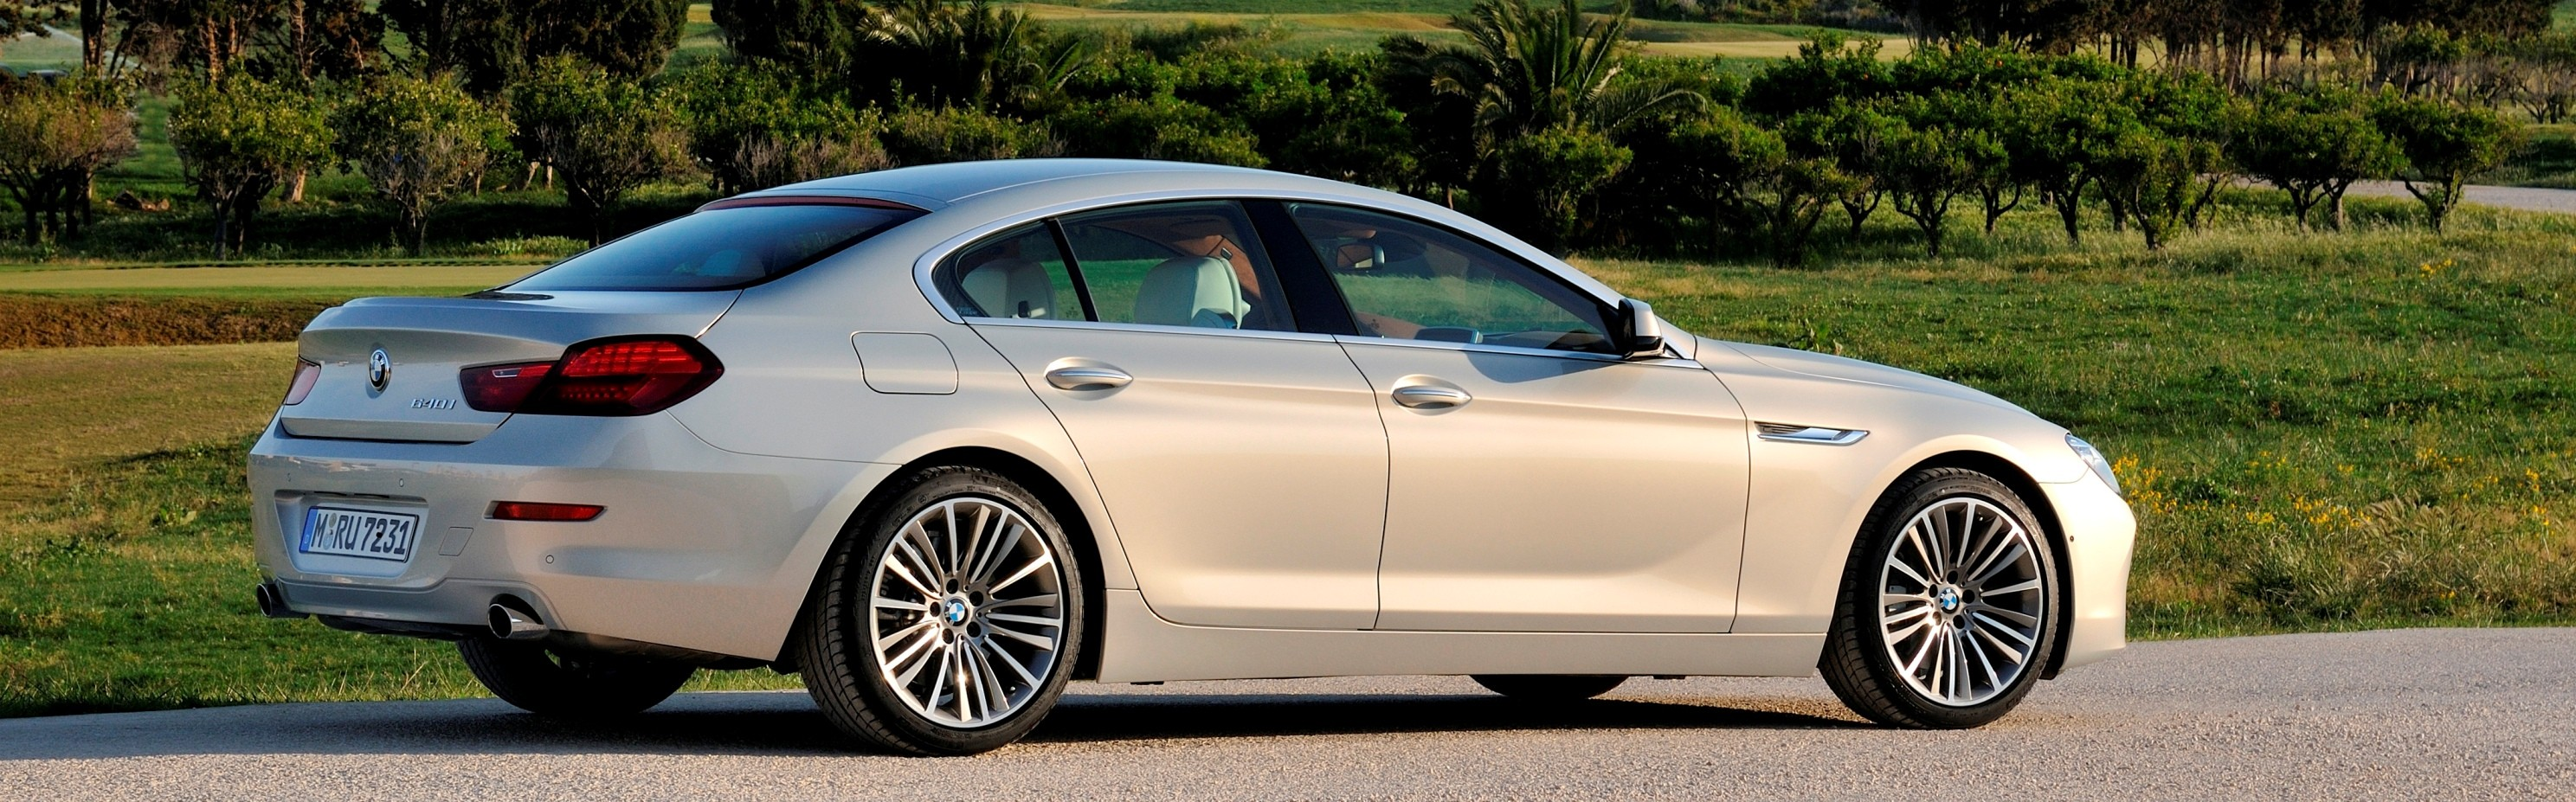 Bestof2013 Awards BMW 640i GranCoupe Coolest 4-Door 46